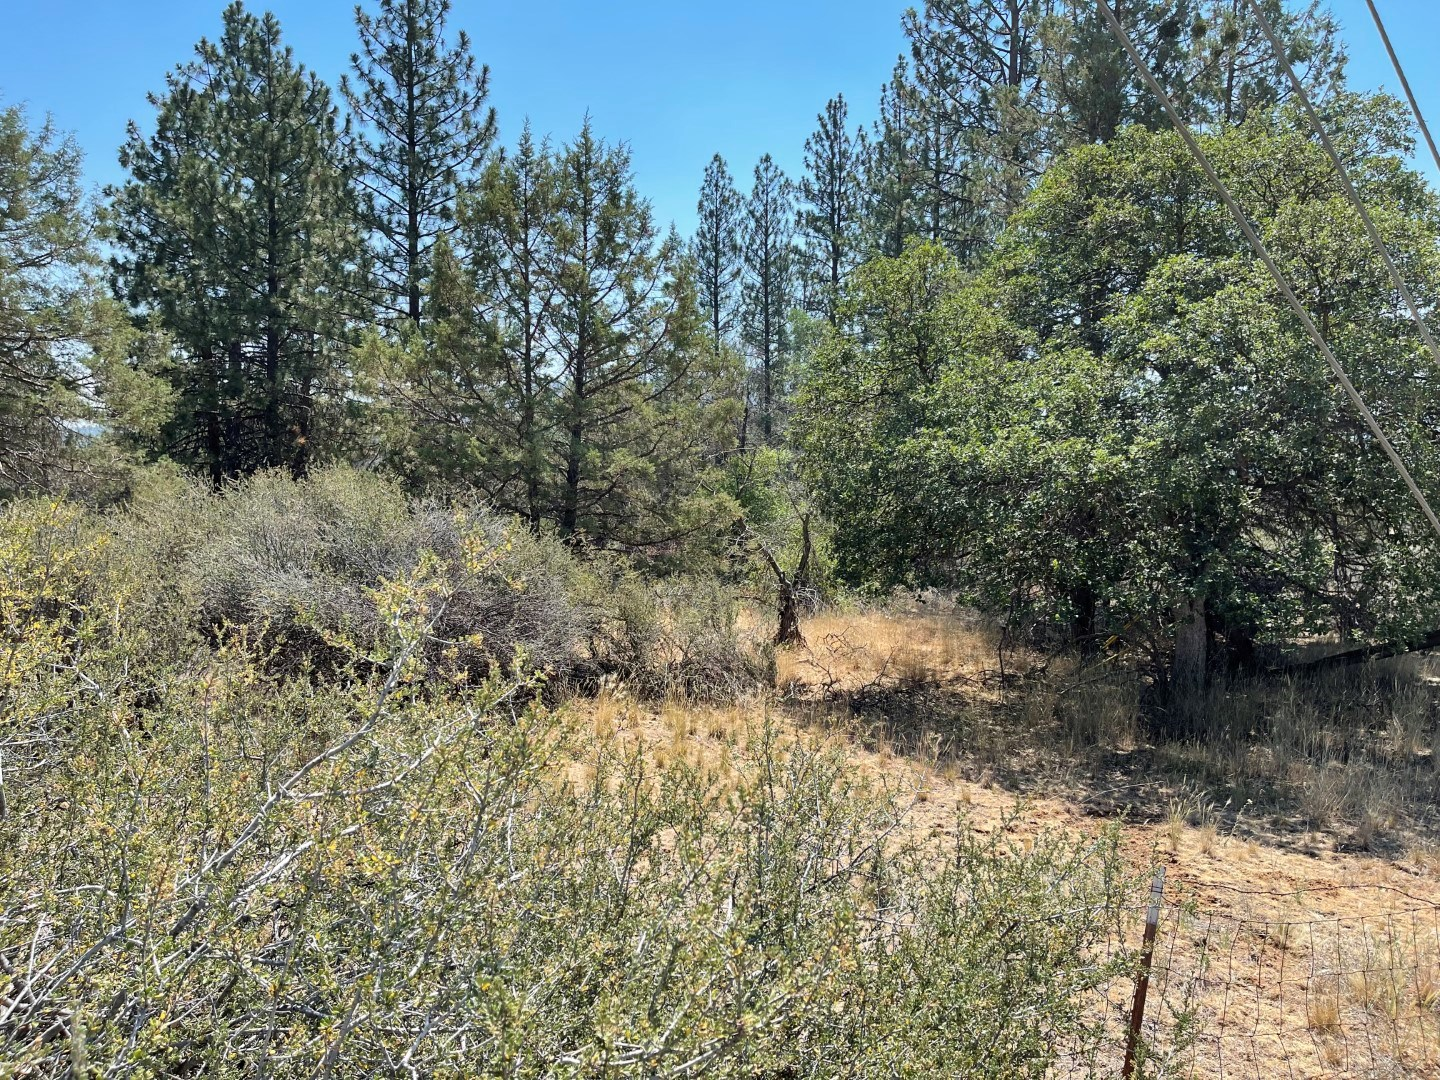 Land for Sale in Yreka